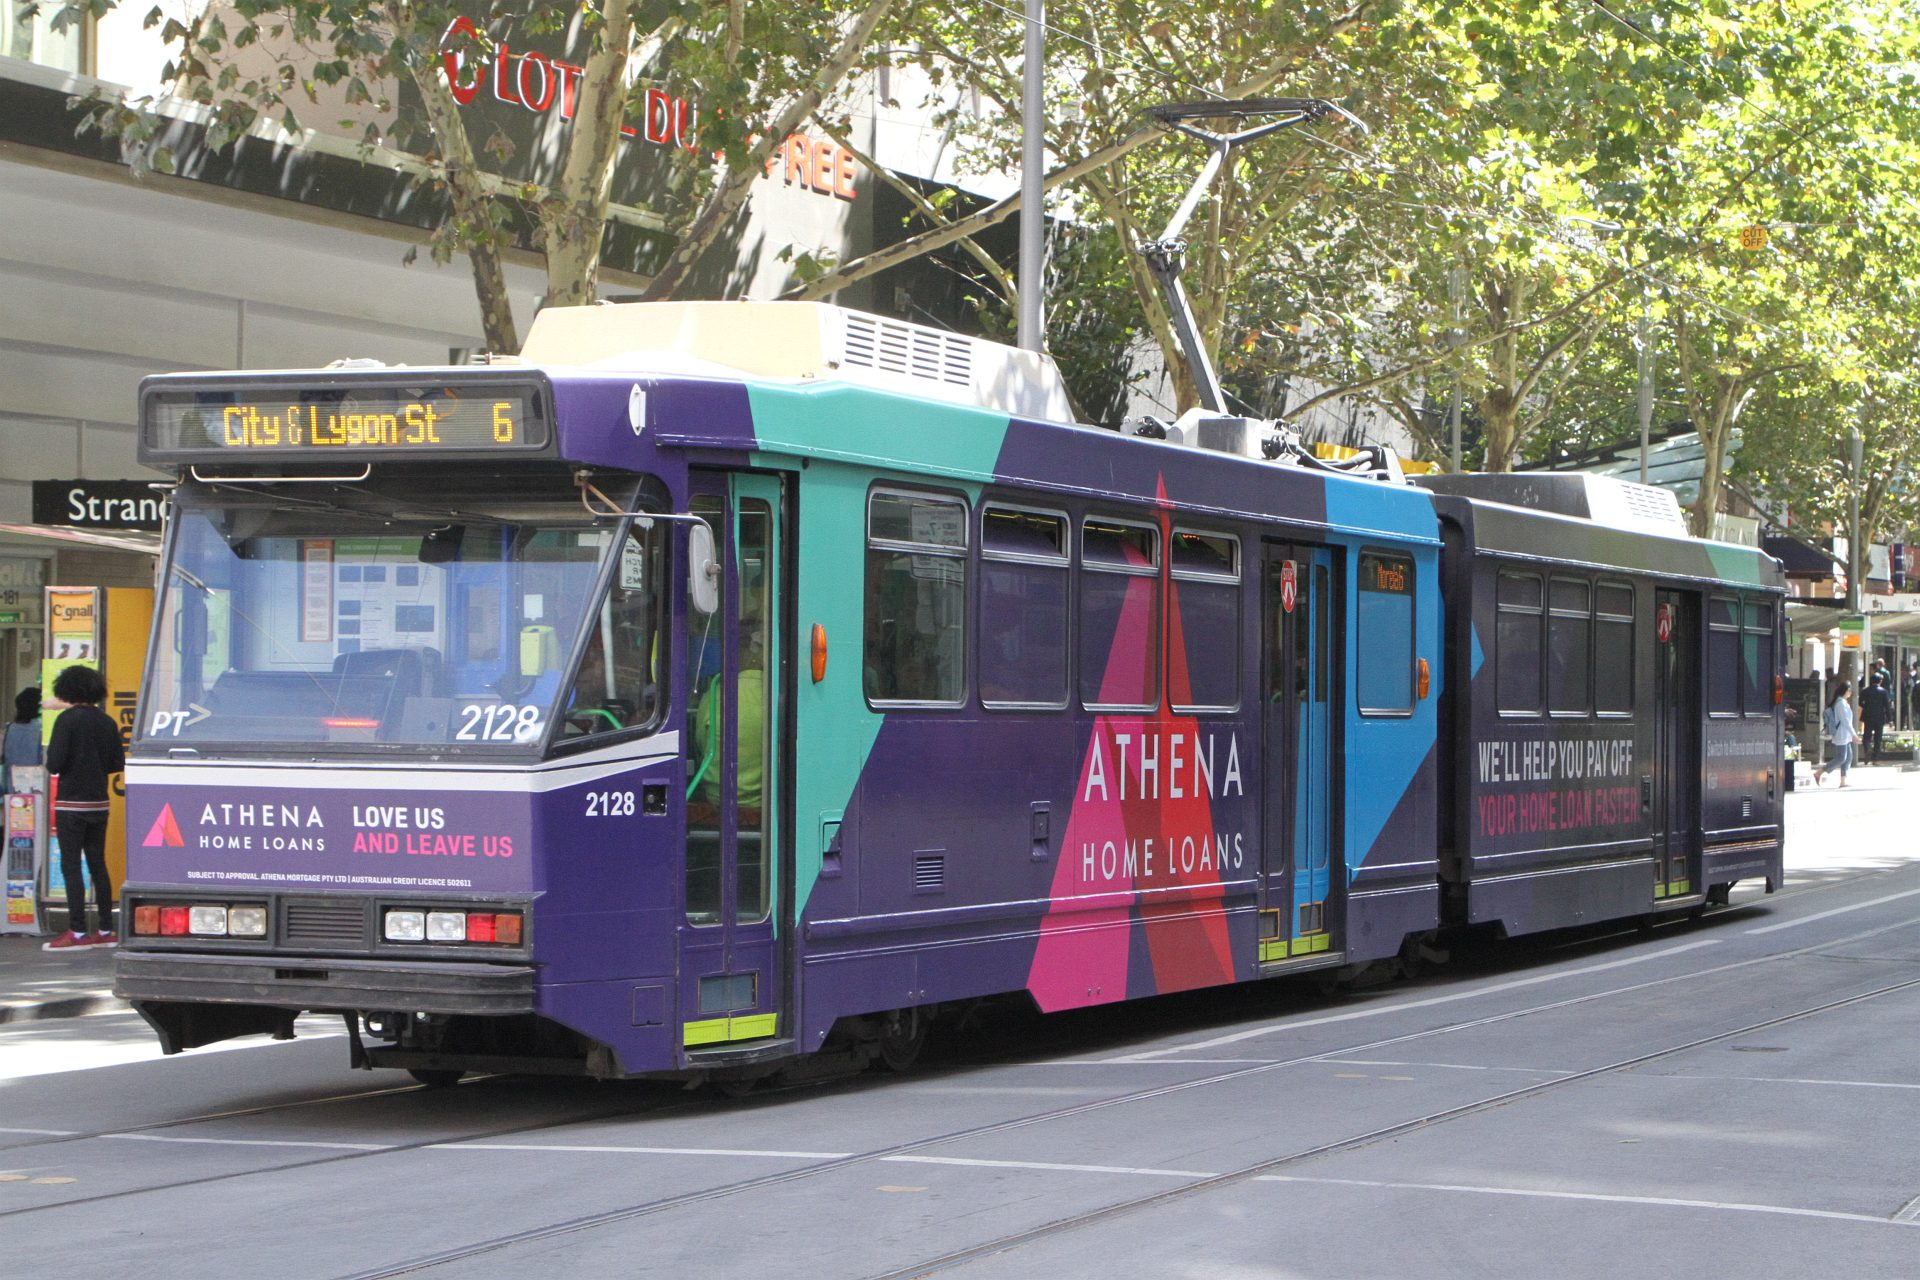 B2 2128 advertising 'Athena Home Loans' heads north on route